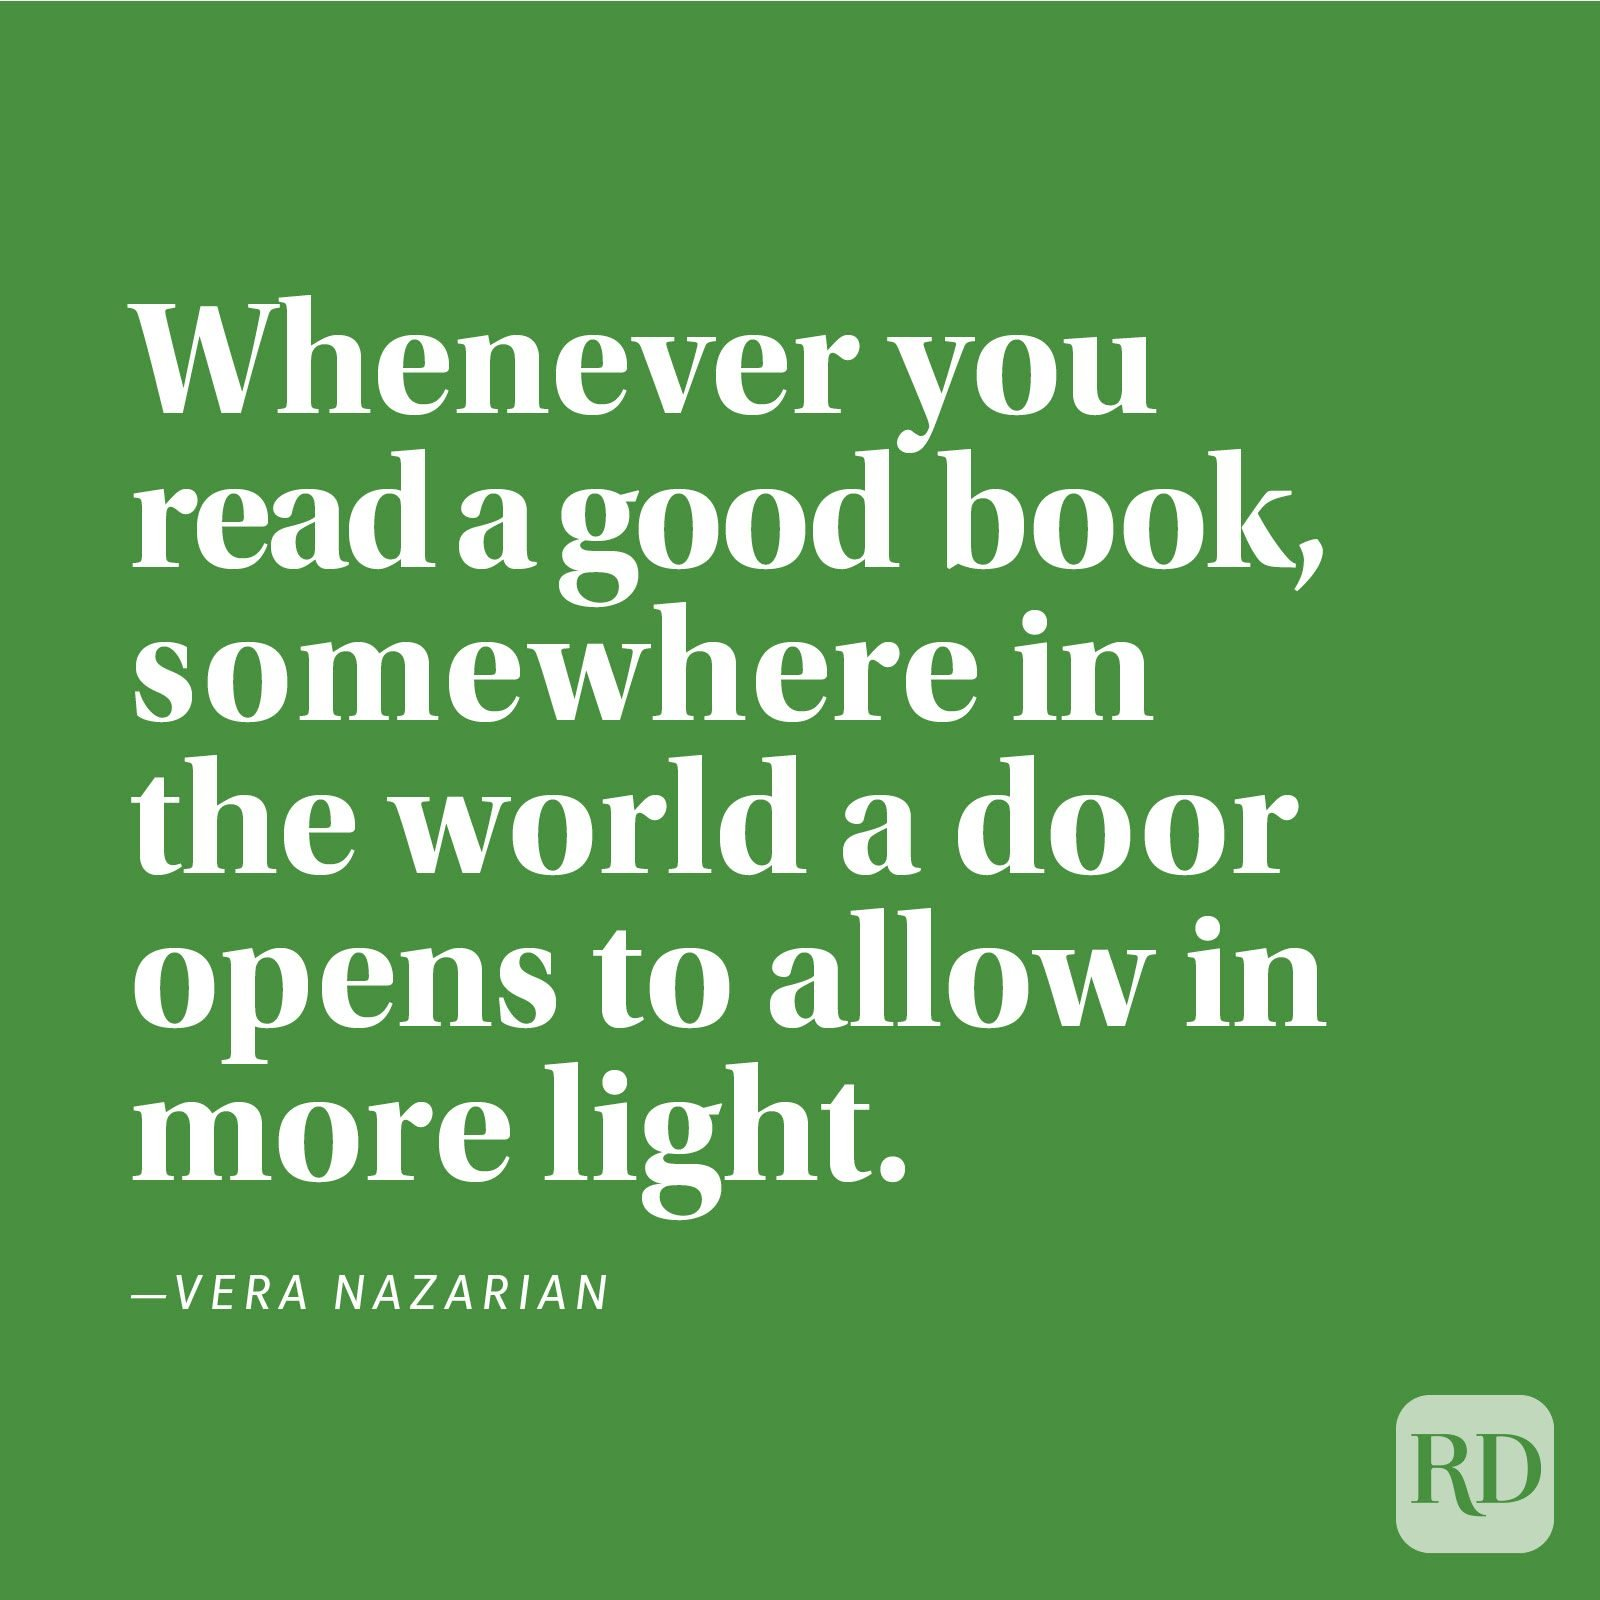 """Whenever you read a good book, somewhere in the world a door opens to allow in more light."" —Vera Nazarian"